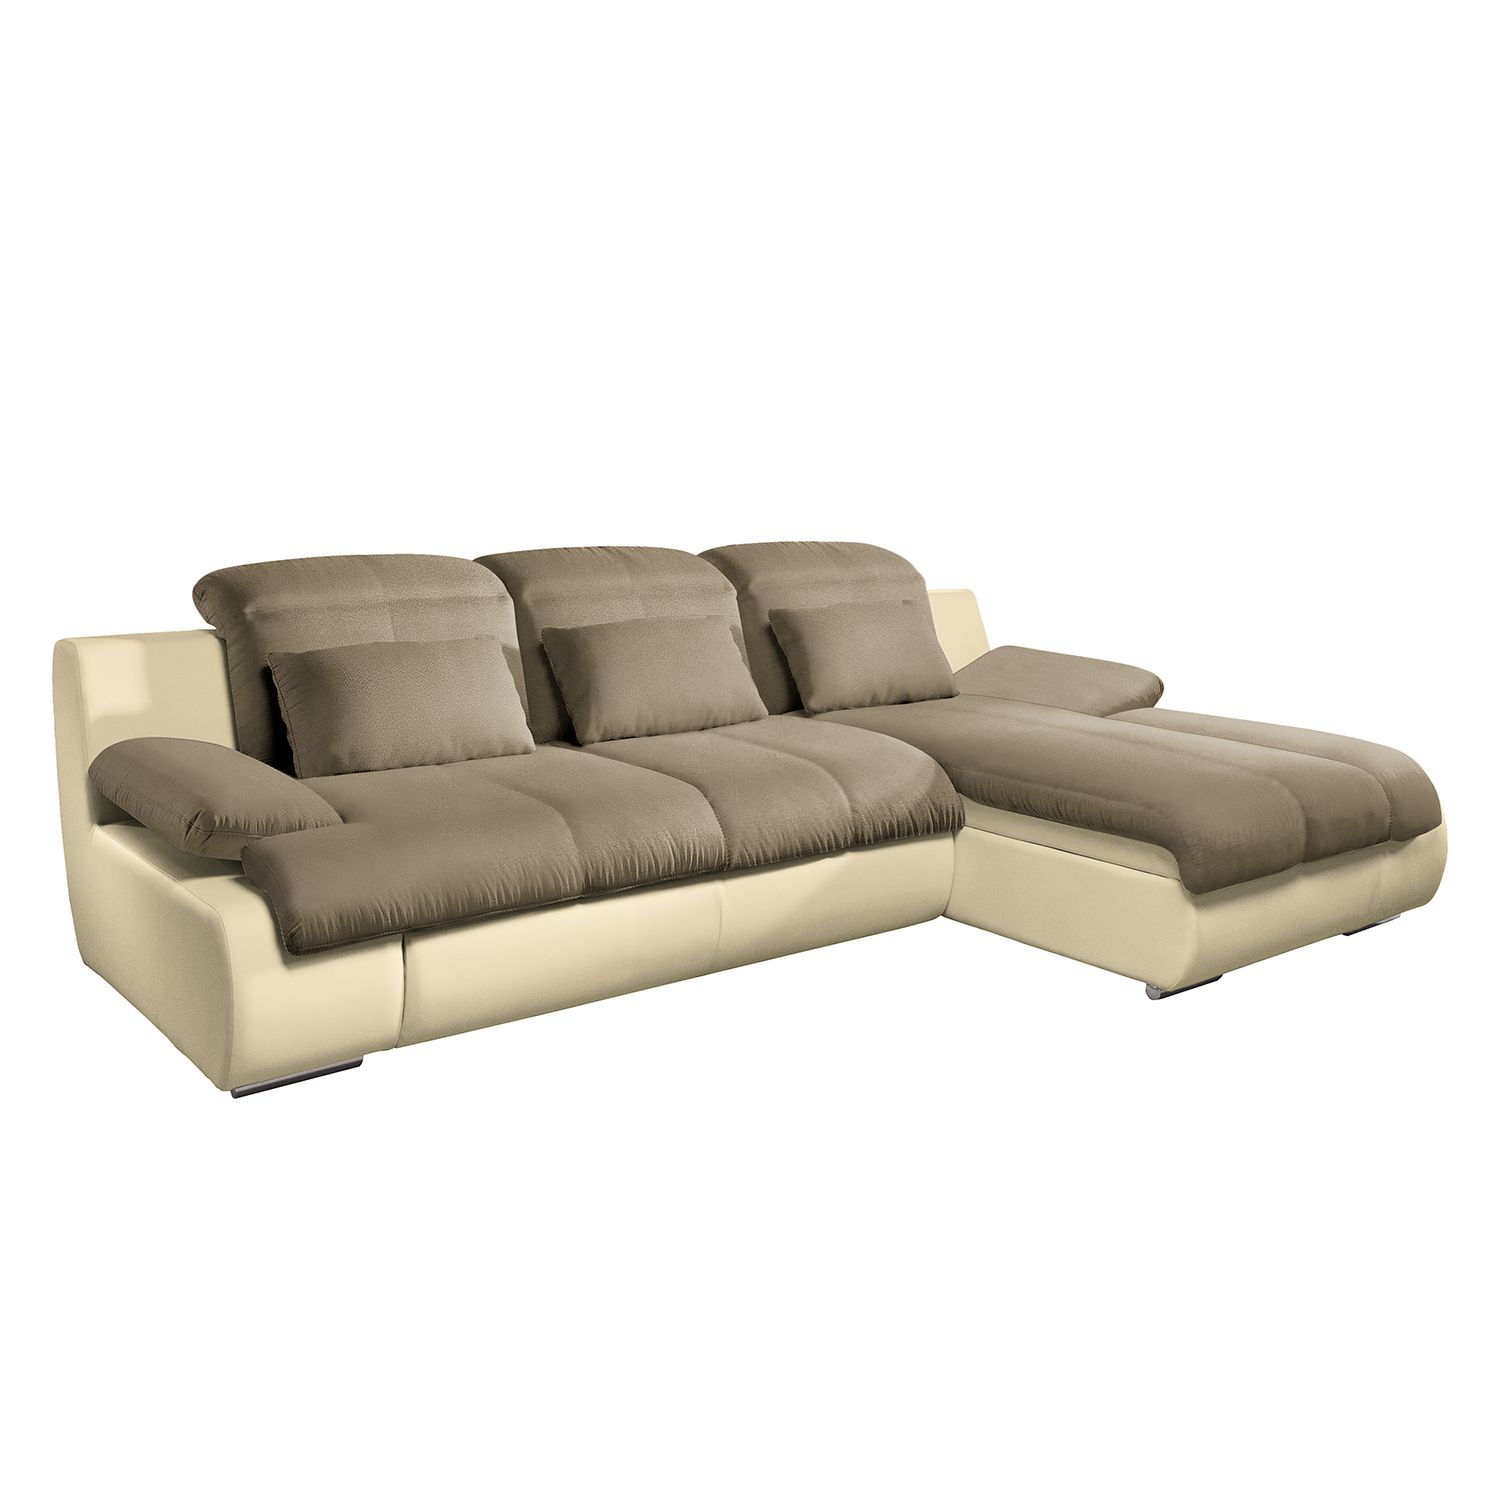 ecksofa mit schlaffunktion creme inspirierendes design f r wohnm bel. Black Bedroom Furniture Sets. Home Design Ideas